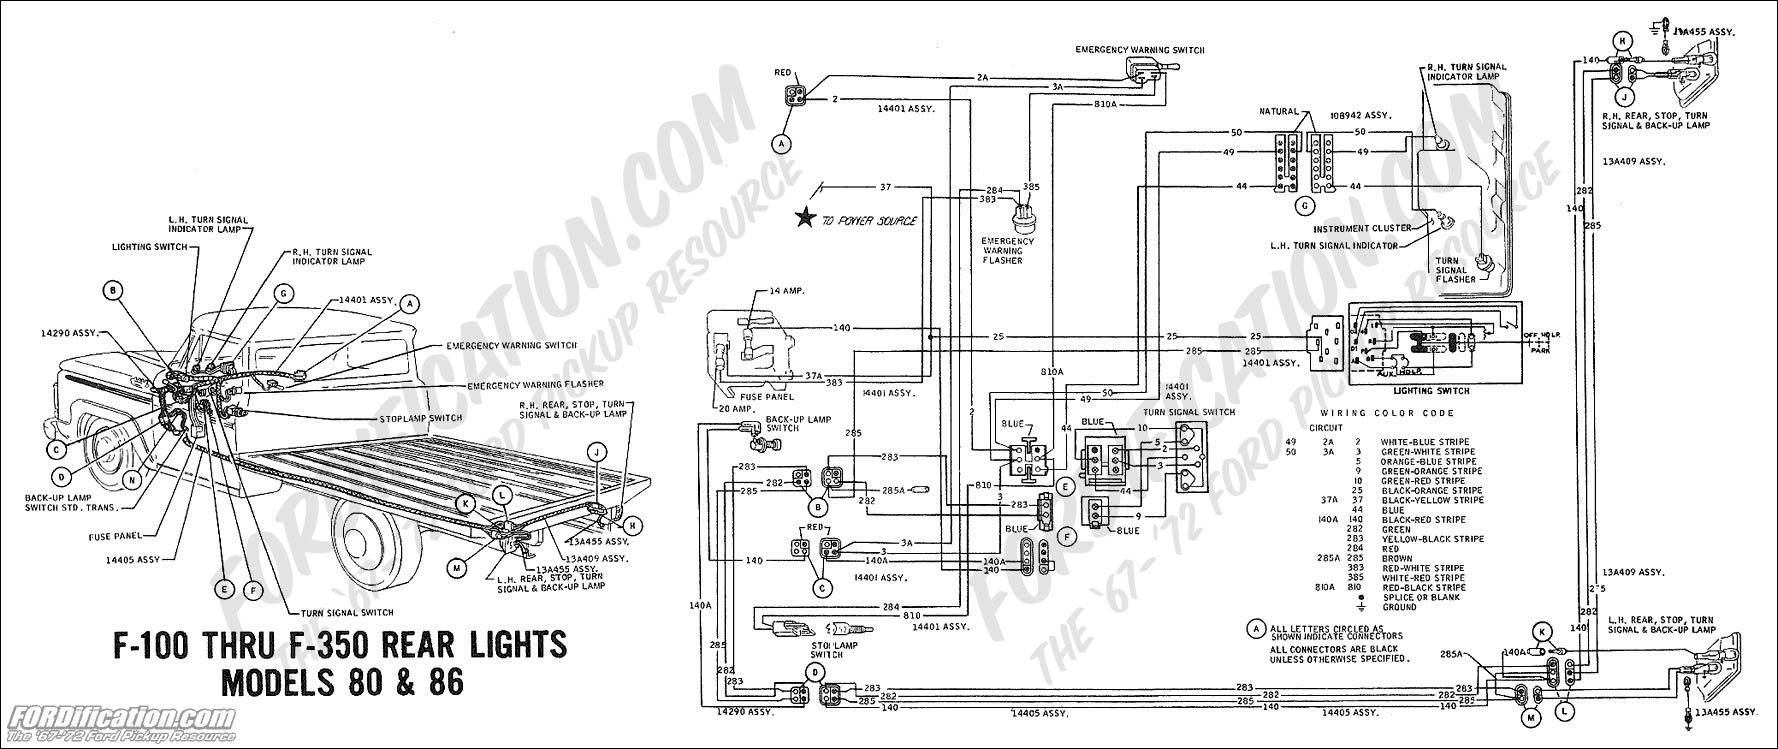 wiring_69rearlights mdls80 86 1994 f700 wiring diagram on 1994 download wirning diagrams 1992 ford f700 wiring diagram at crackthecode.co